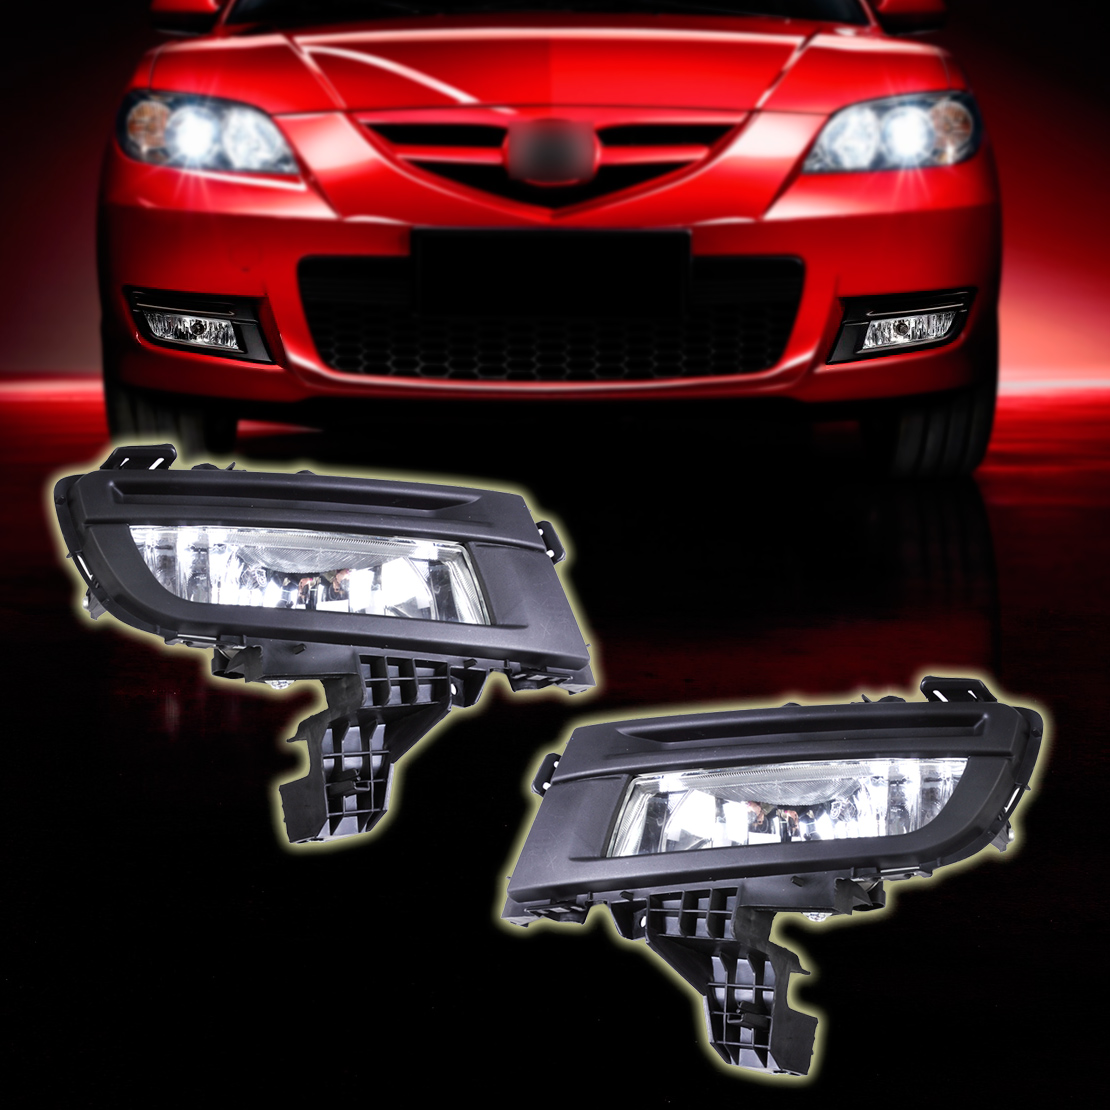 beler High Quality ABS Pair Front Fog Light Lamp 9006 12V 51W for Mazda 3 2007 2008 2009 Replacement Without wiring harness citall 2pcs front left right side fog light lamp replacement kit 9006 12v 51w for mazda 3 2007 2008 2009 size 29cm x 12cm